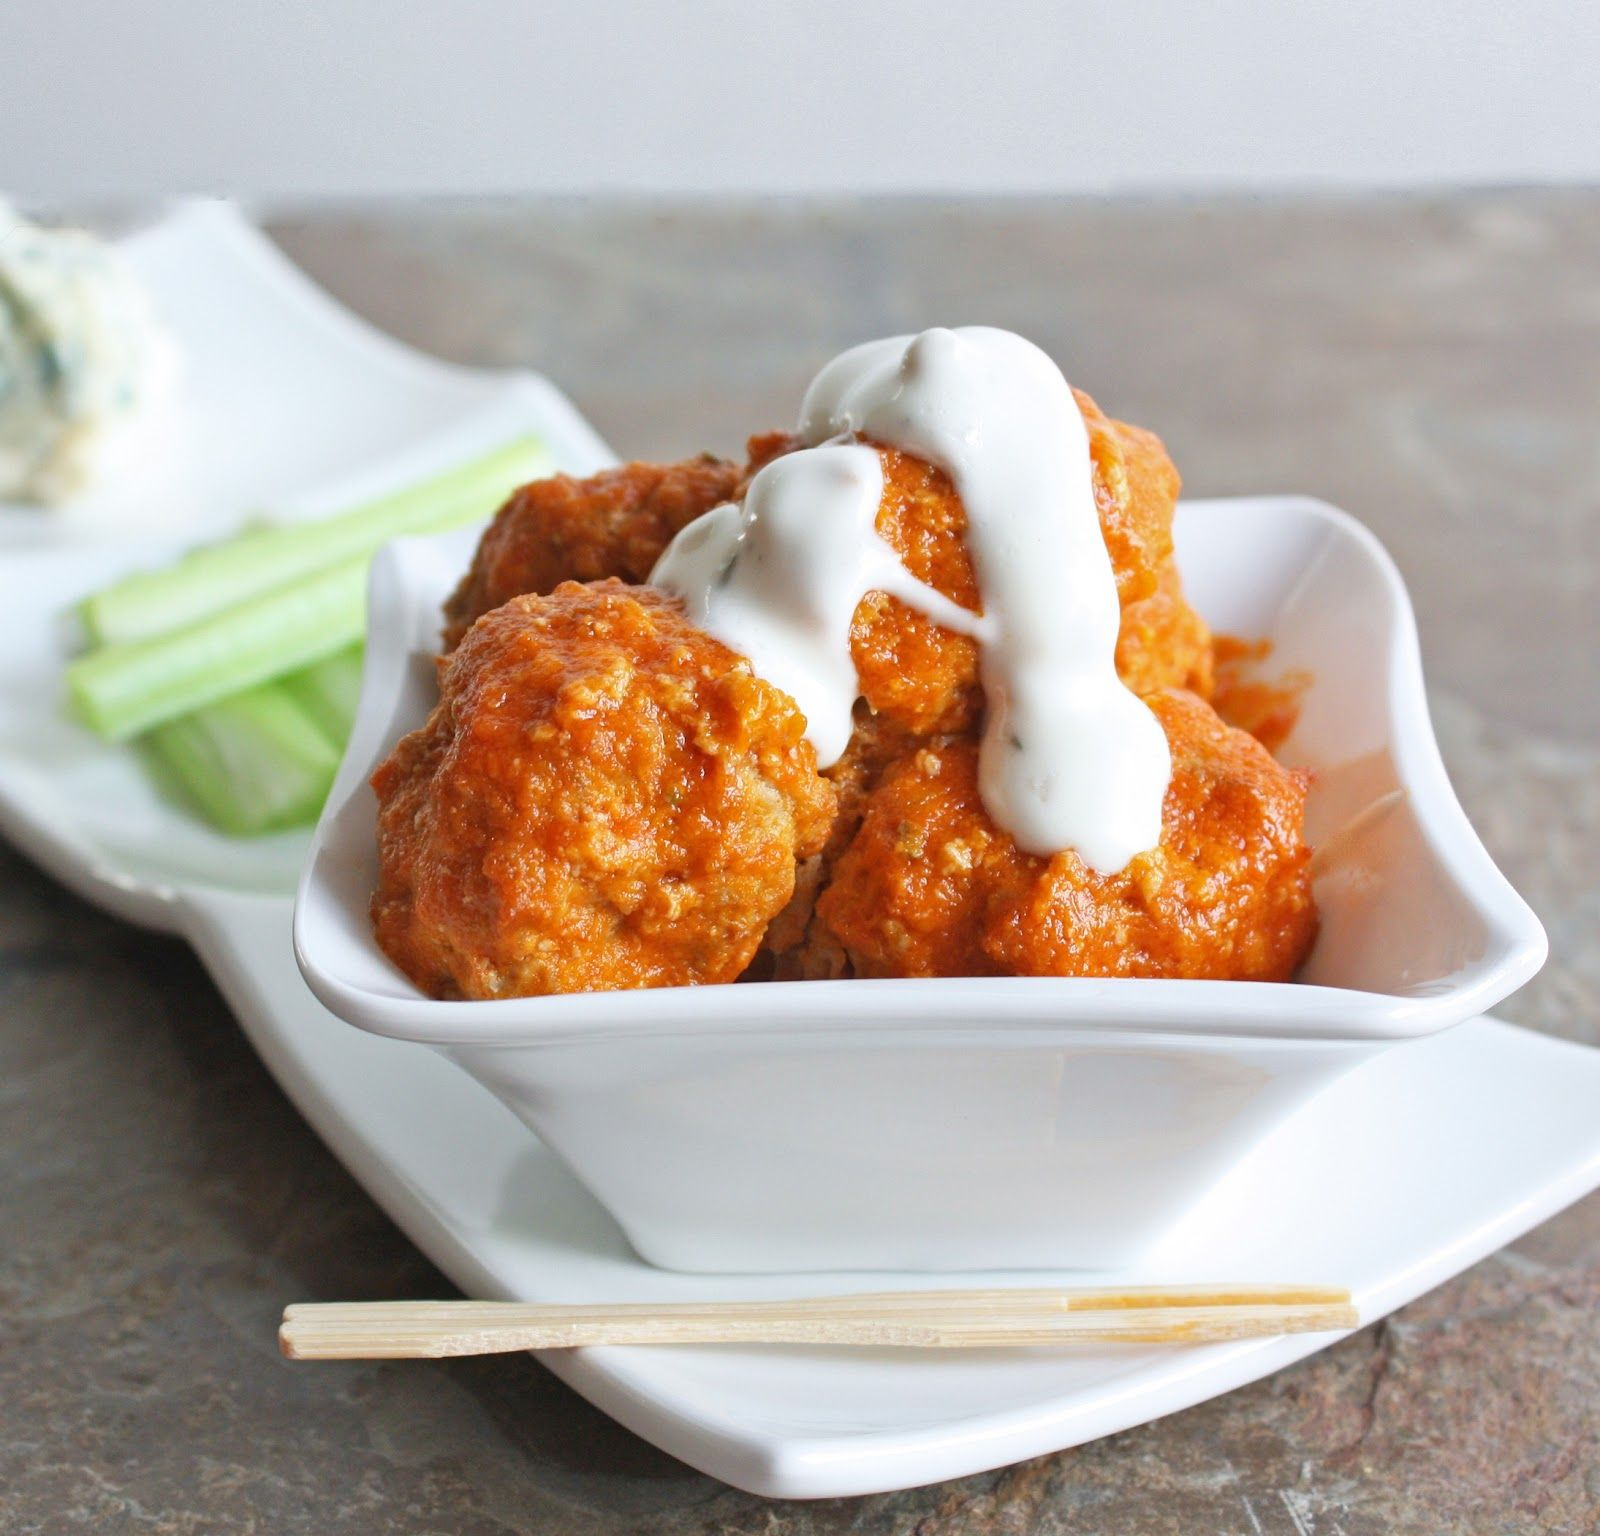 omg really need to try this! Make these immediately: Buffalo Chicken Meatballs, into a crockpot. Put ground turkey meat balls with 1/2 cup of Franks Red Hot Sauce w 1/2 stick of butter. Turn on crock pot and heat for your party. Serve with celery and blue cheese